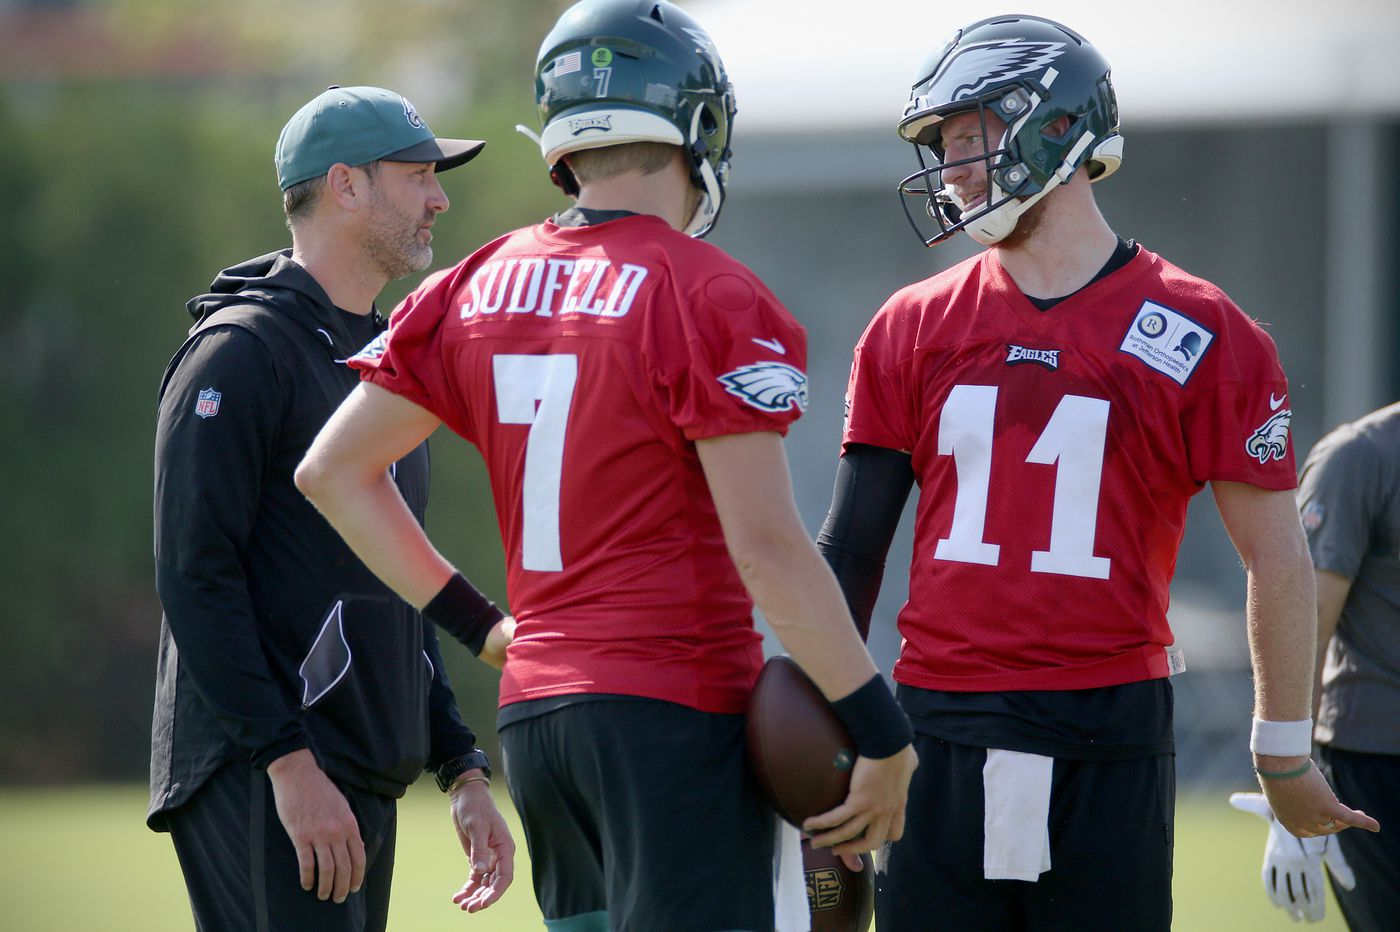 Eagles practice observations: Cornerback competition, Nate Sudfeld developing, last wide receiver battle